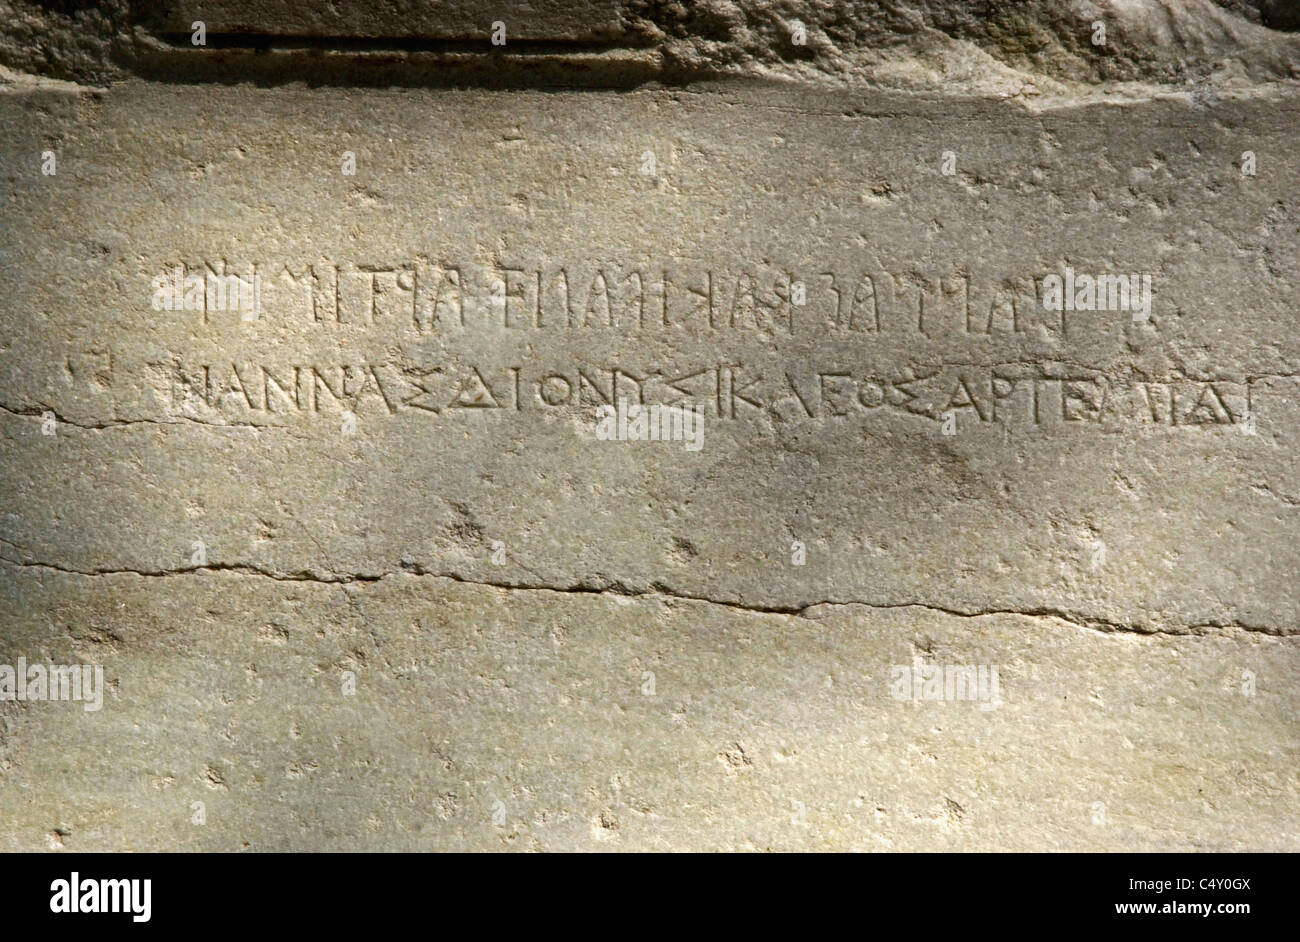 Bilingual (Greek and Lydian) inscription, Sardis, Turkey 010803_037 - Stock Image